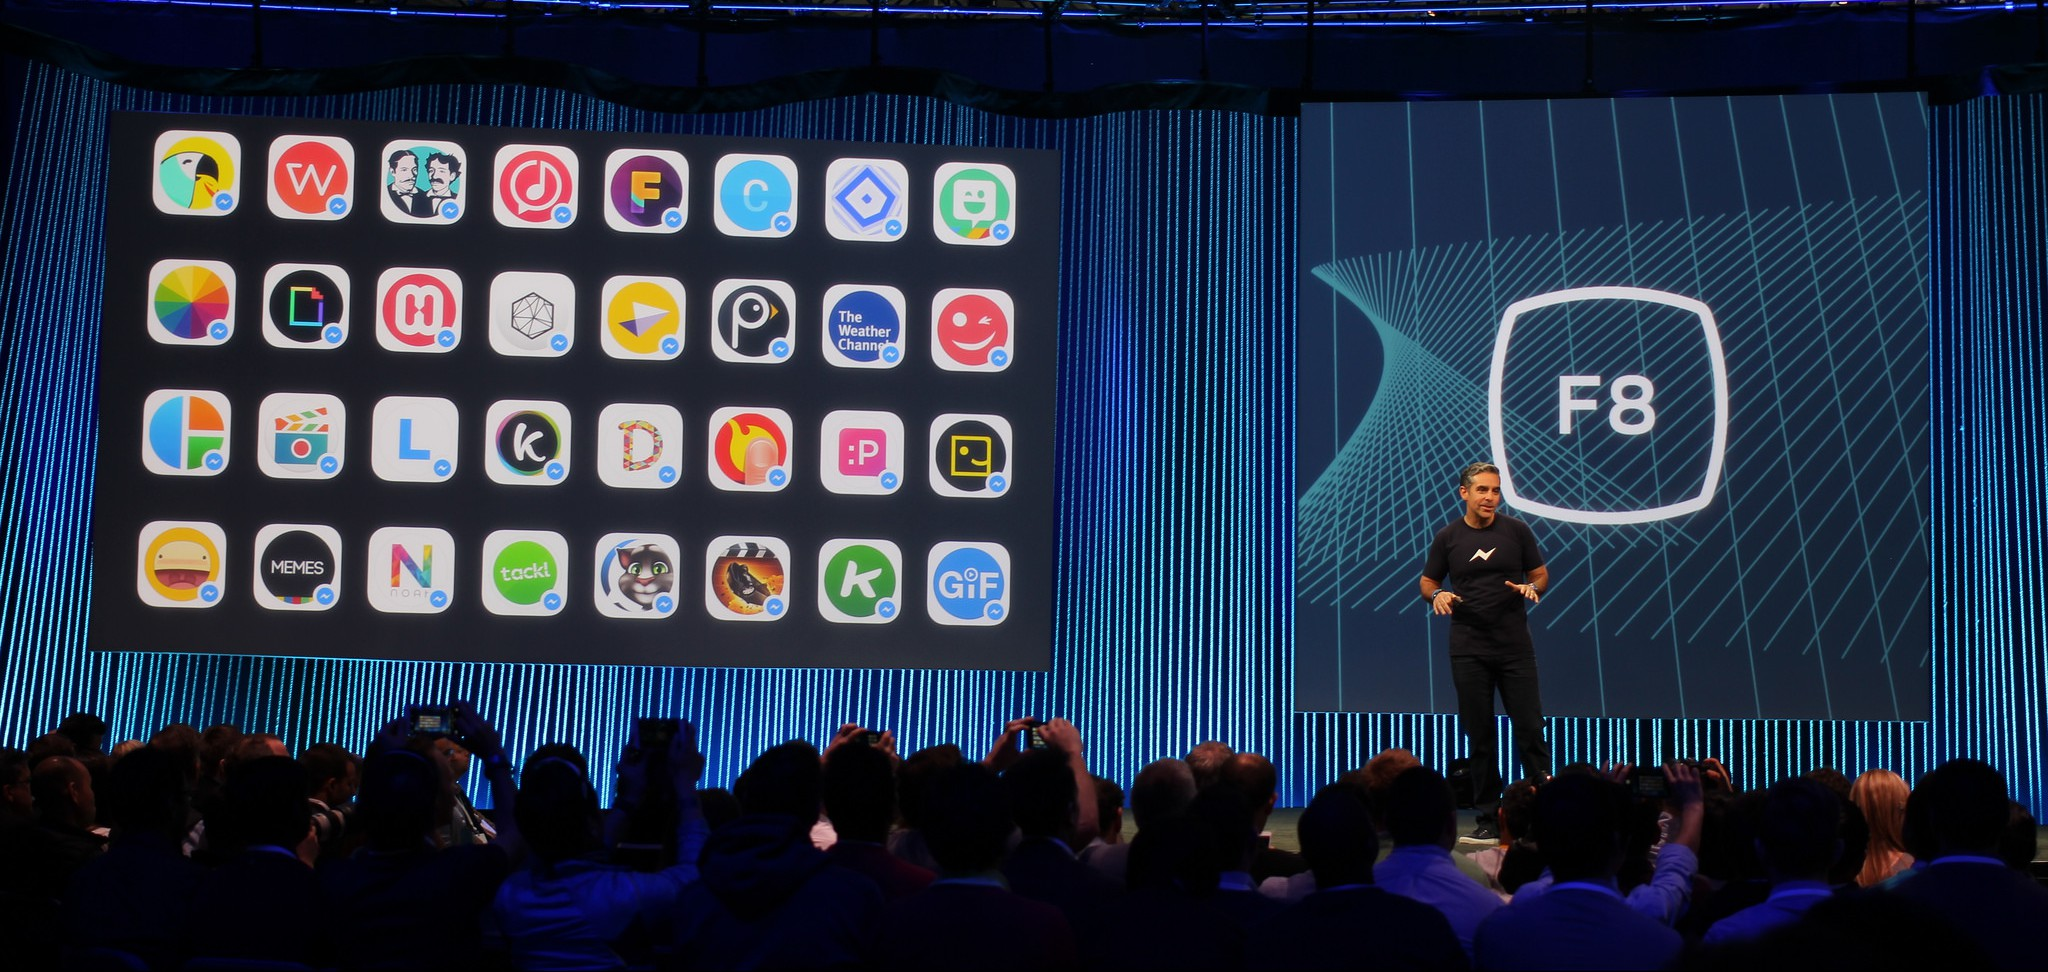 David Marcus talking about Facebook Messenger onstage at F8 2015